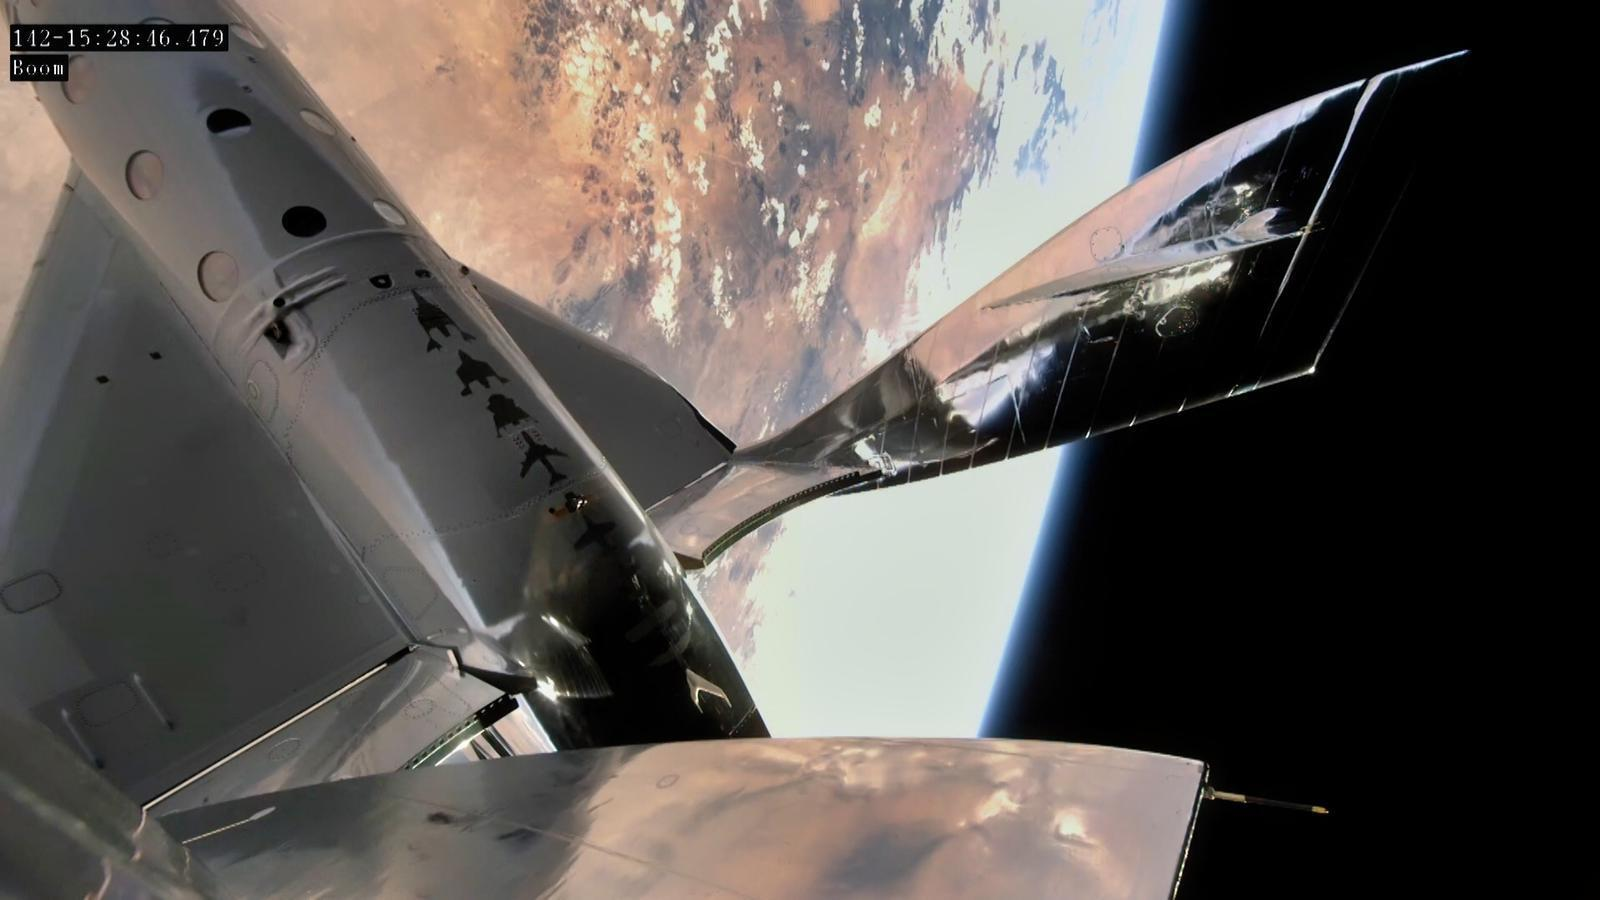 After climbing to 50,000 feet (15 kilometers), VSS Unity ignites its rocket-powered engine to ascend at Mach 3 beyond the 50 miles (80 kilometers) of altitude  considered the edge of space